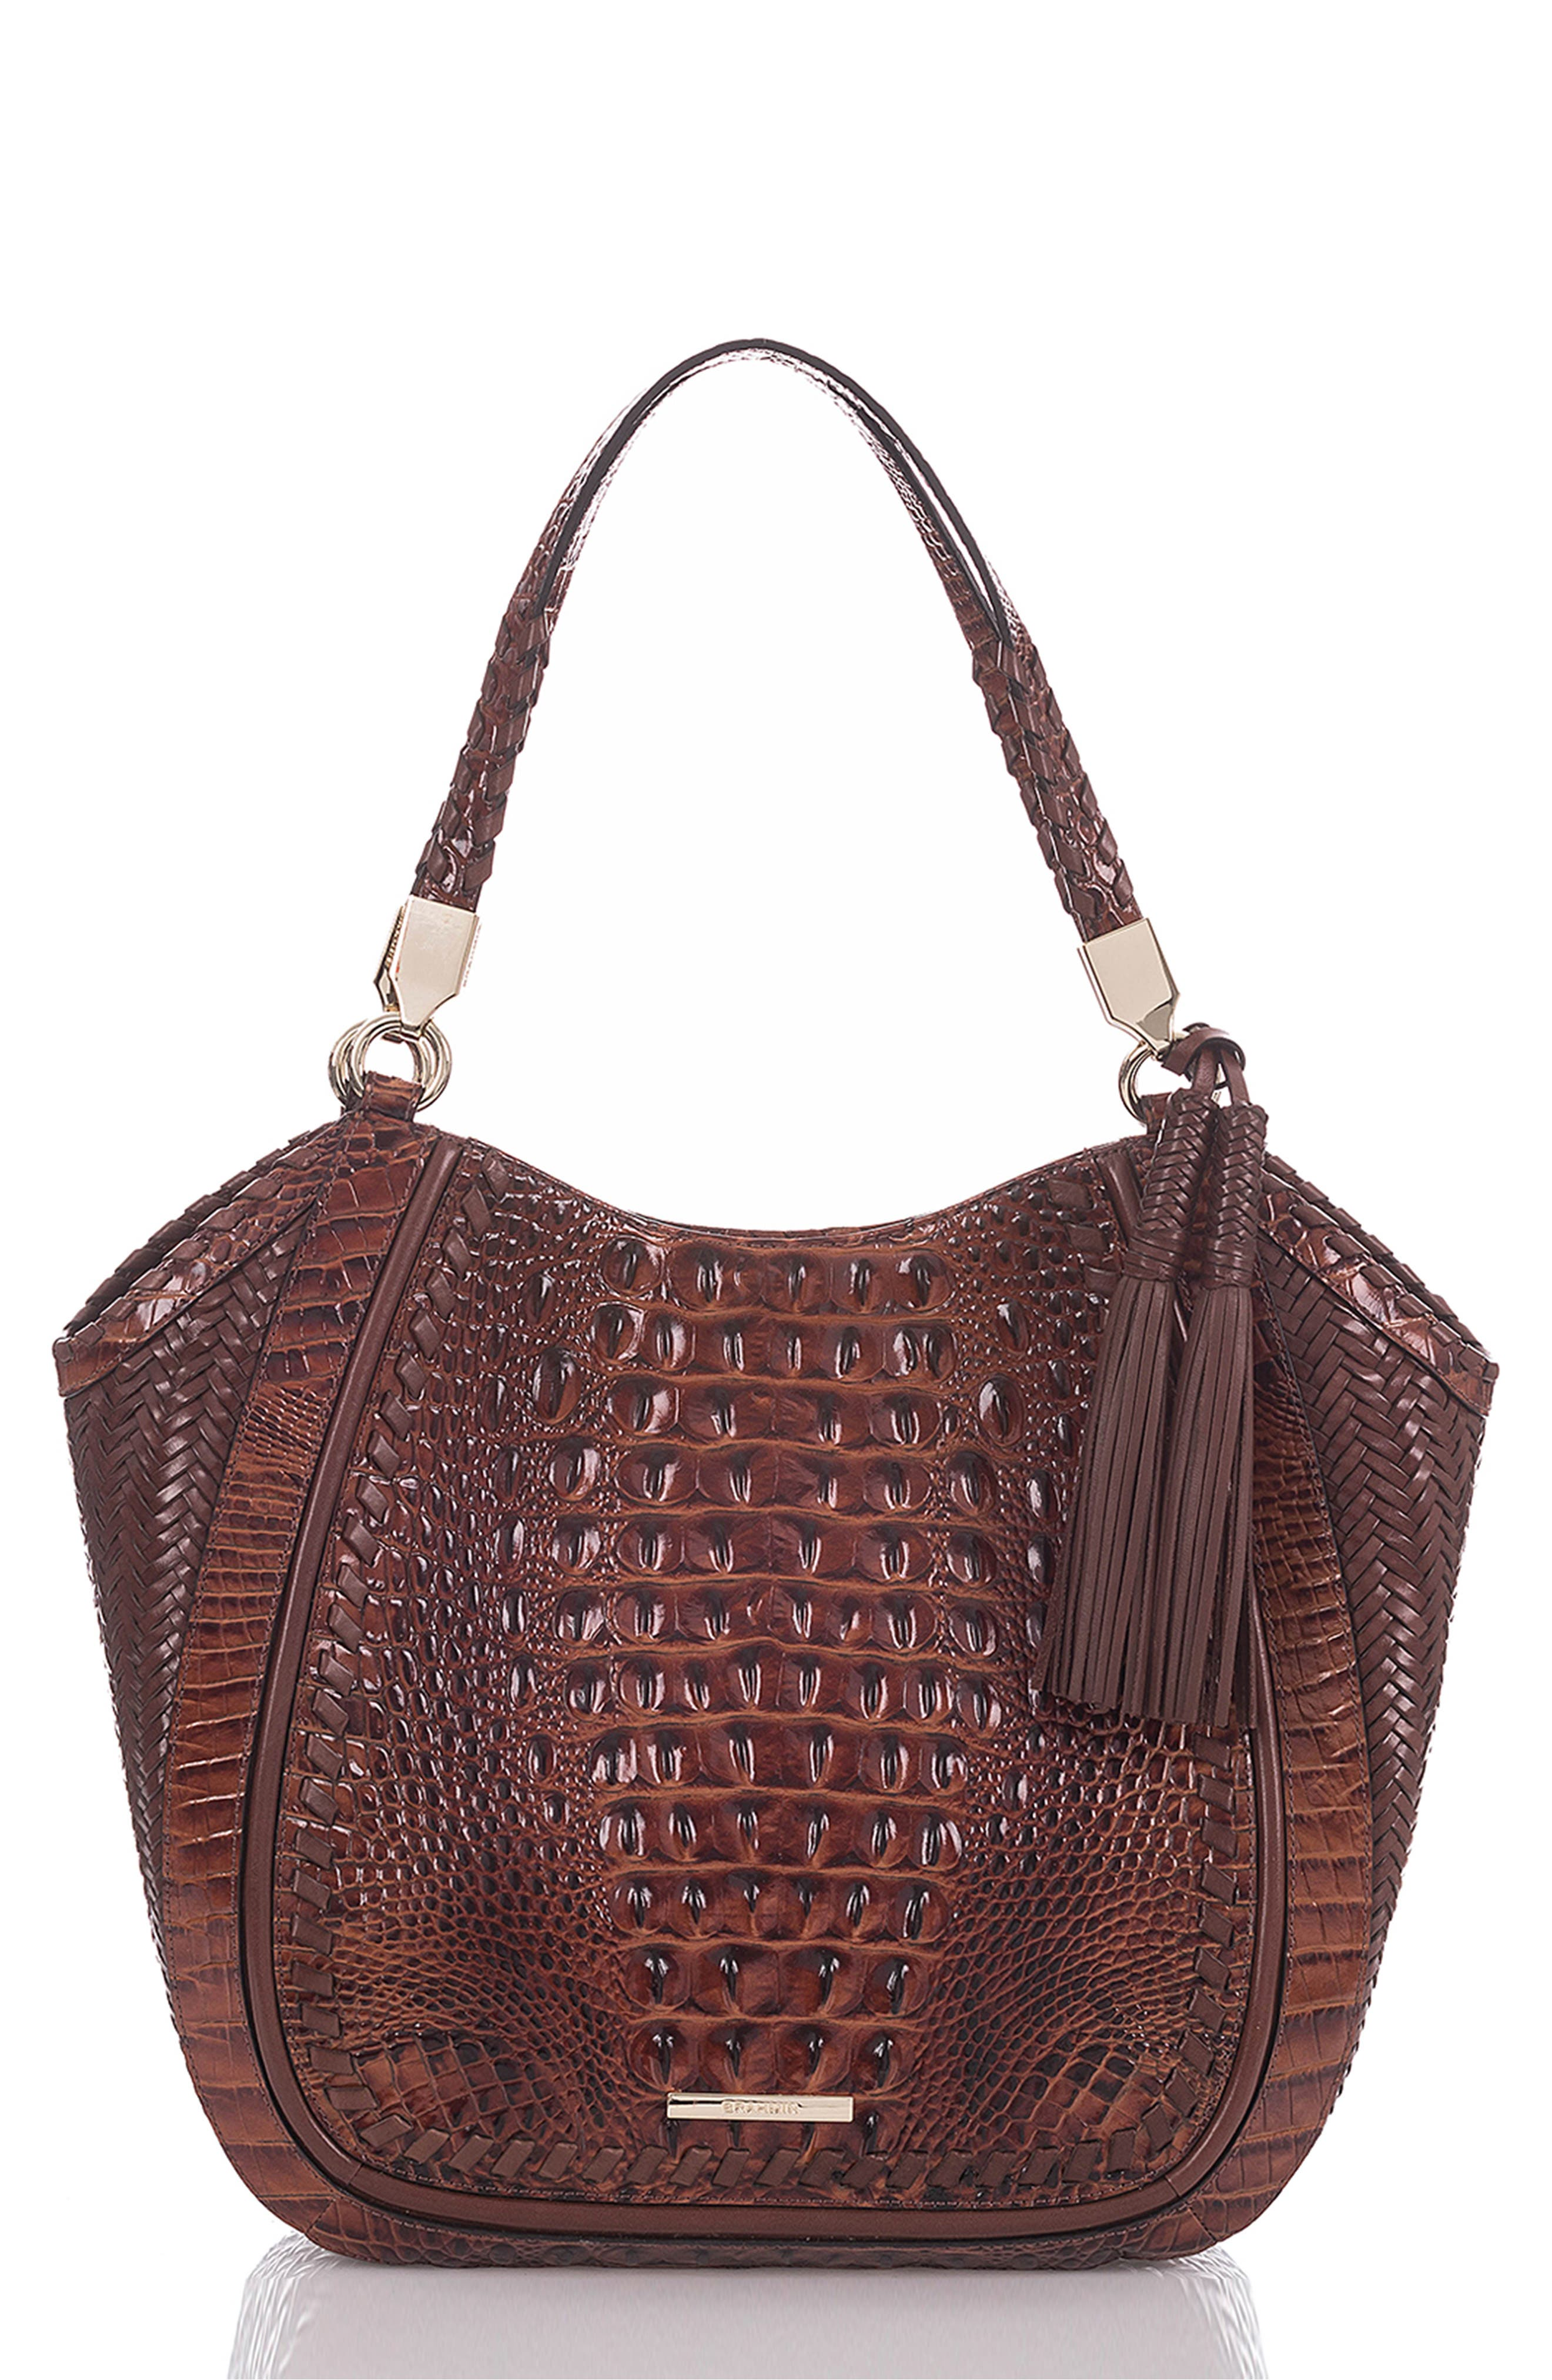 BRAHMIN Marianna Croc Embossed Leather Tote, Main, color, 200